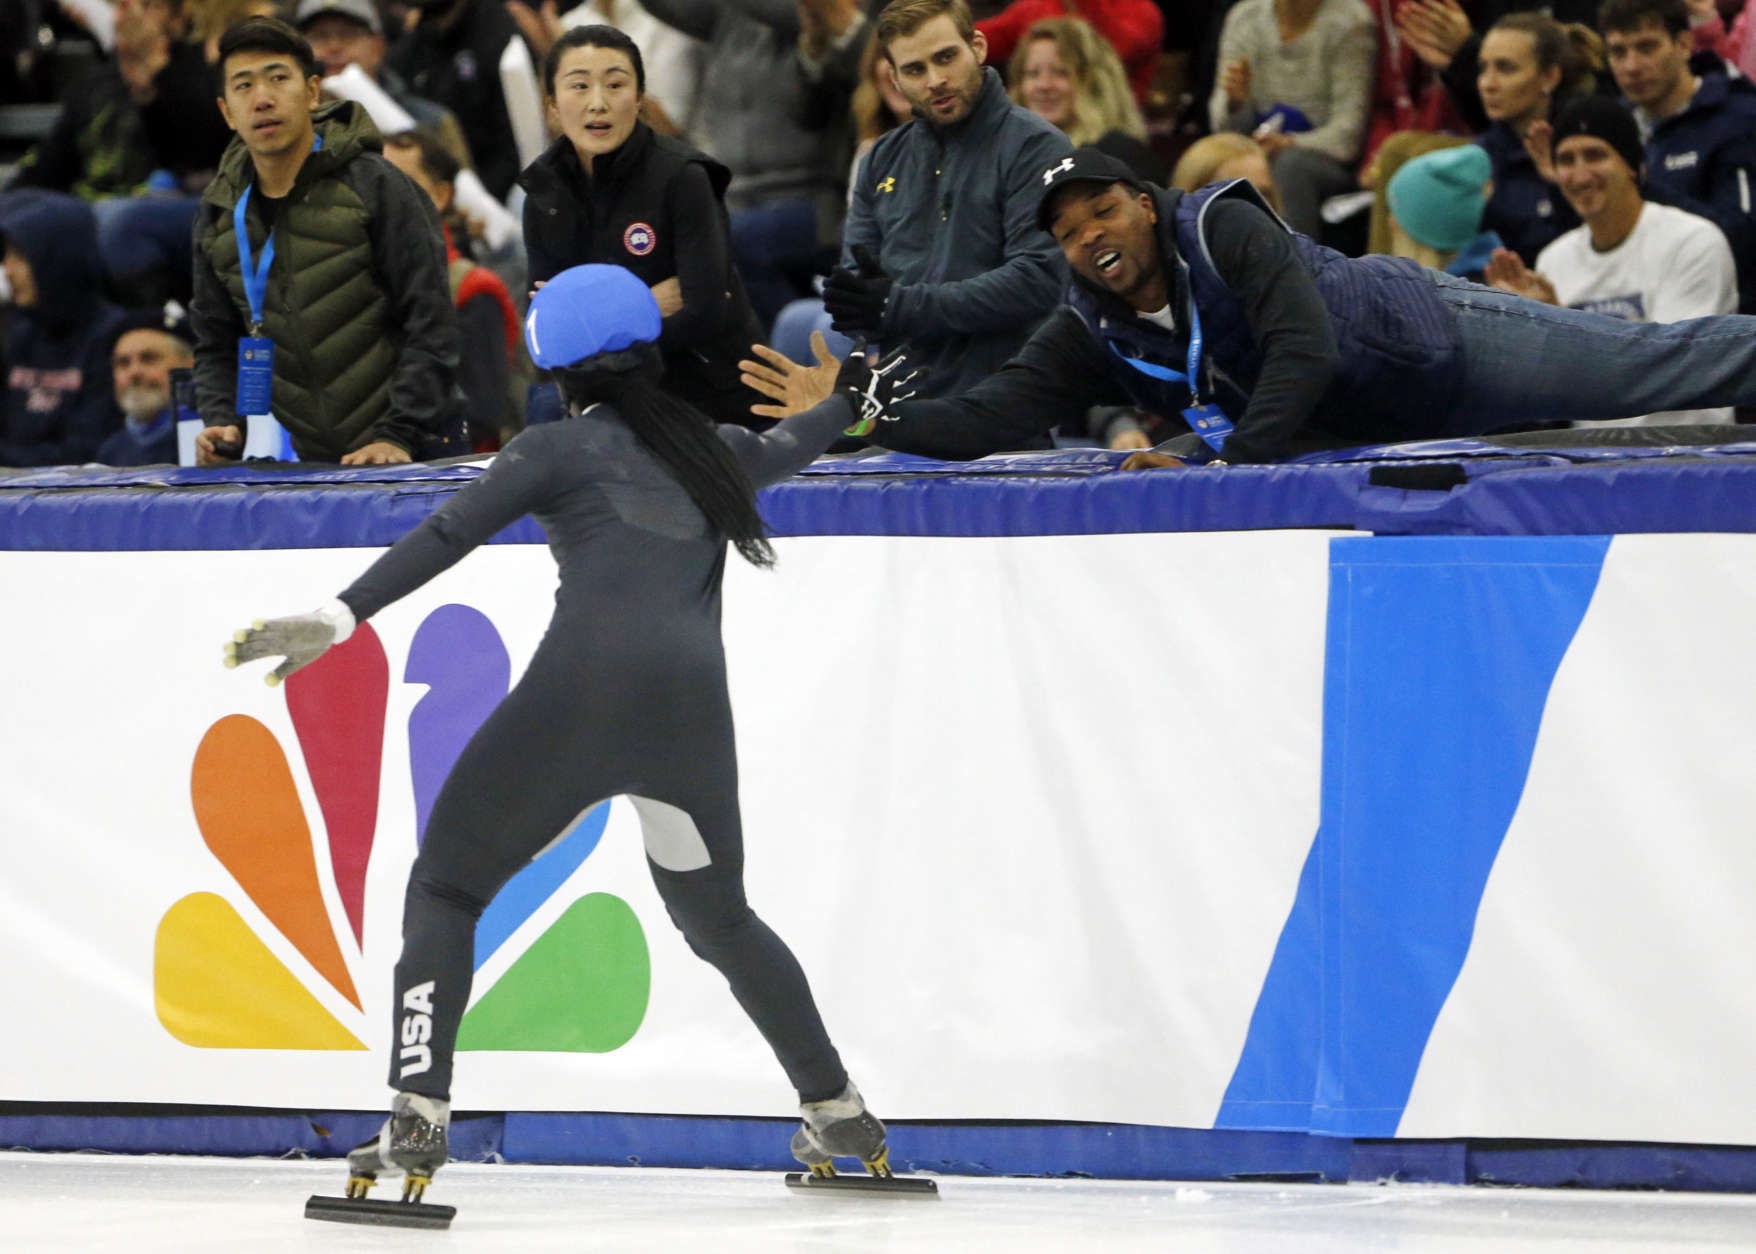 Maame Biney (1) celebrates with her coach after winning the women's 500-meter final A during the U.S .Olympic short track speedskating trials Saturday, Dec. 16, 2017, in Kearns, Utah. (AP Photo/Rick Bowmer)